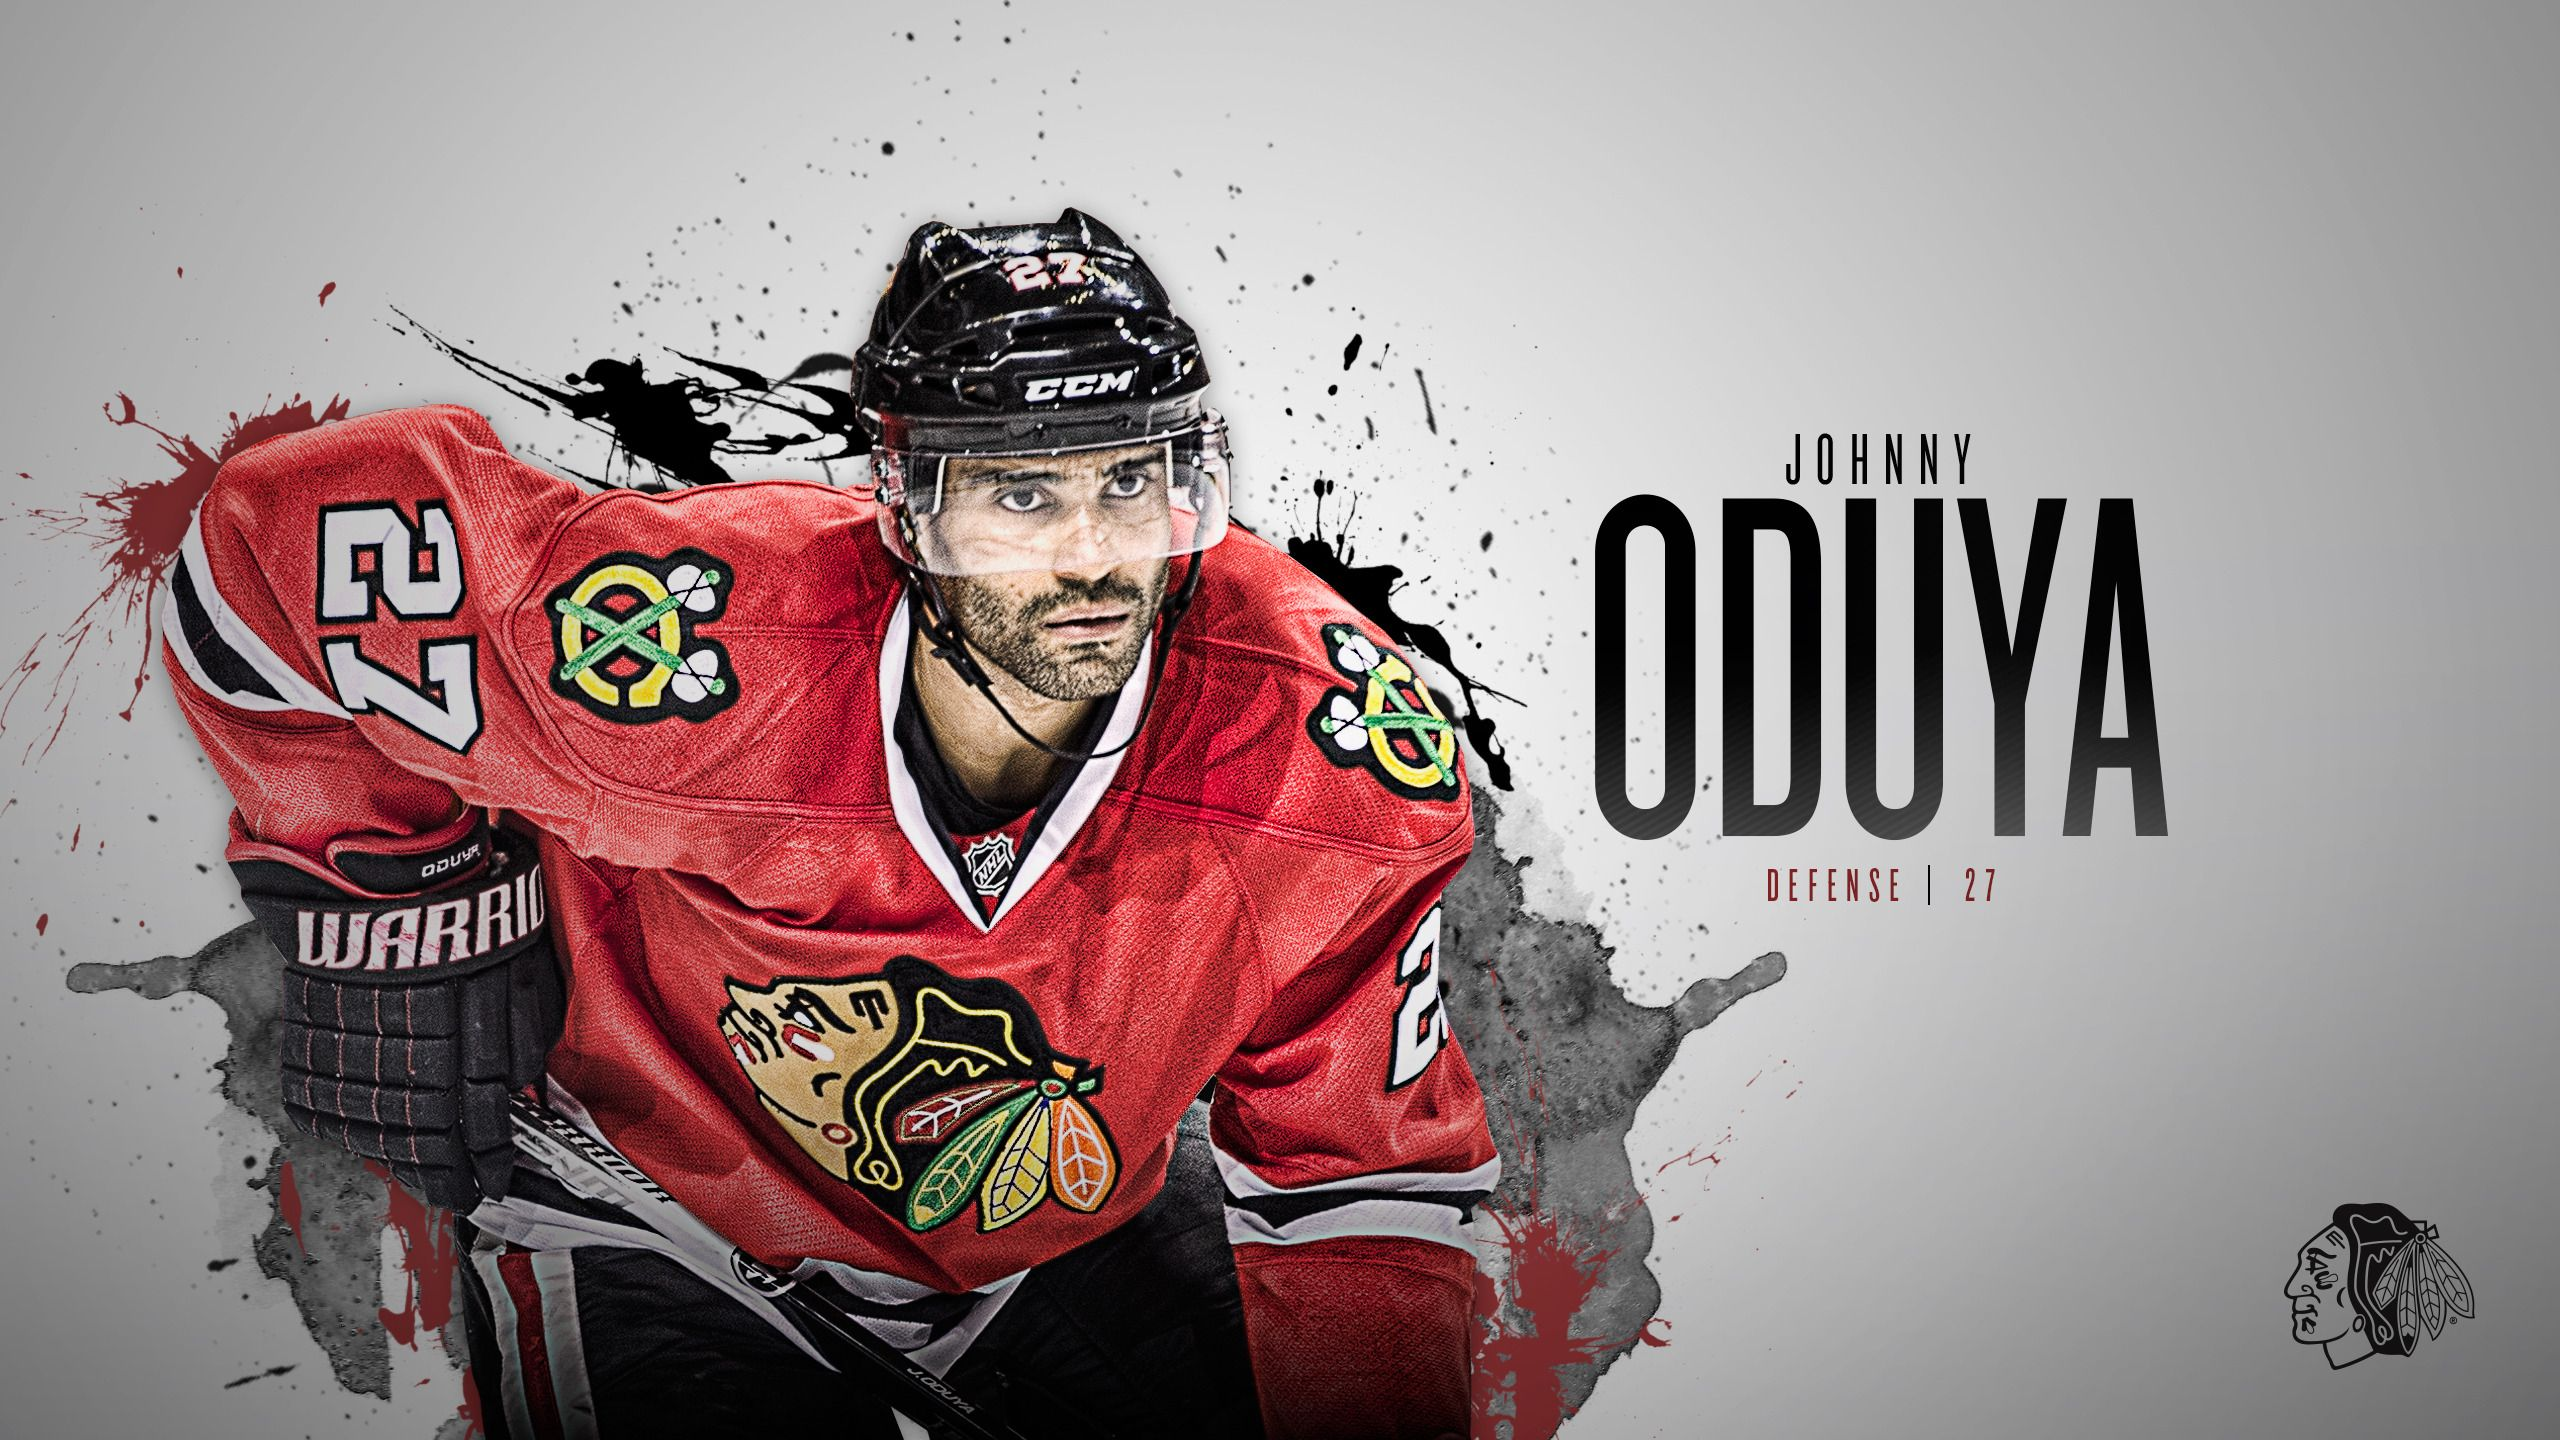 Johnny Oduya Wallpaper